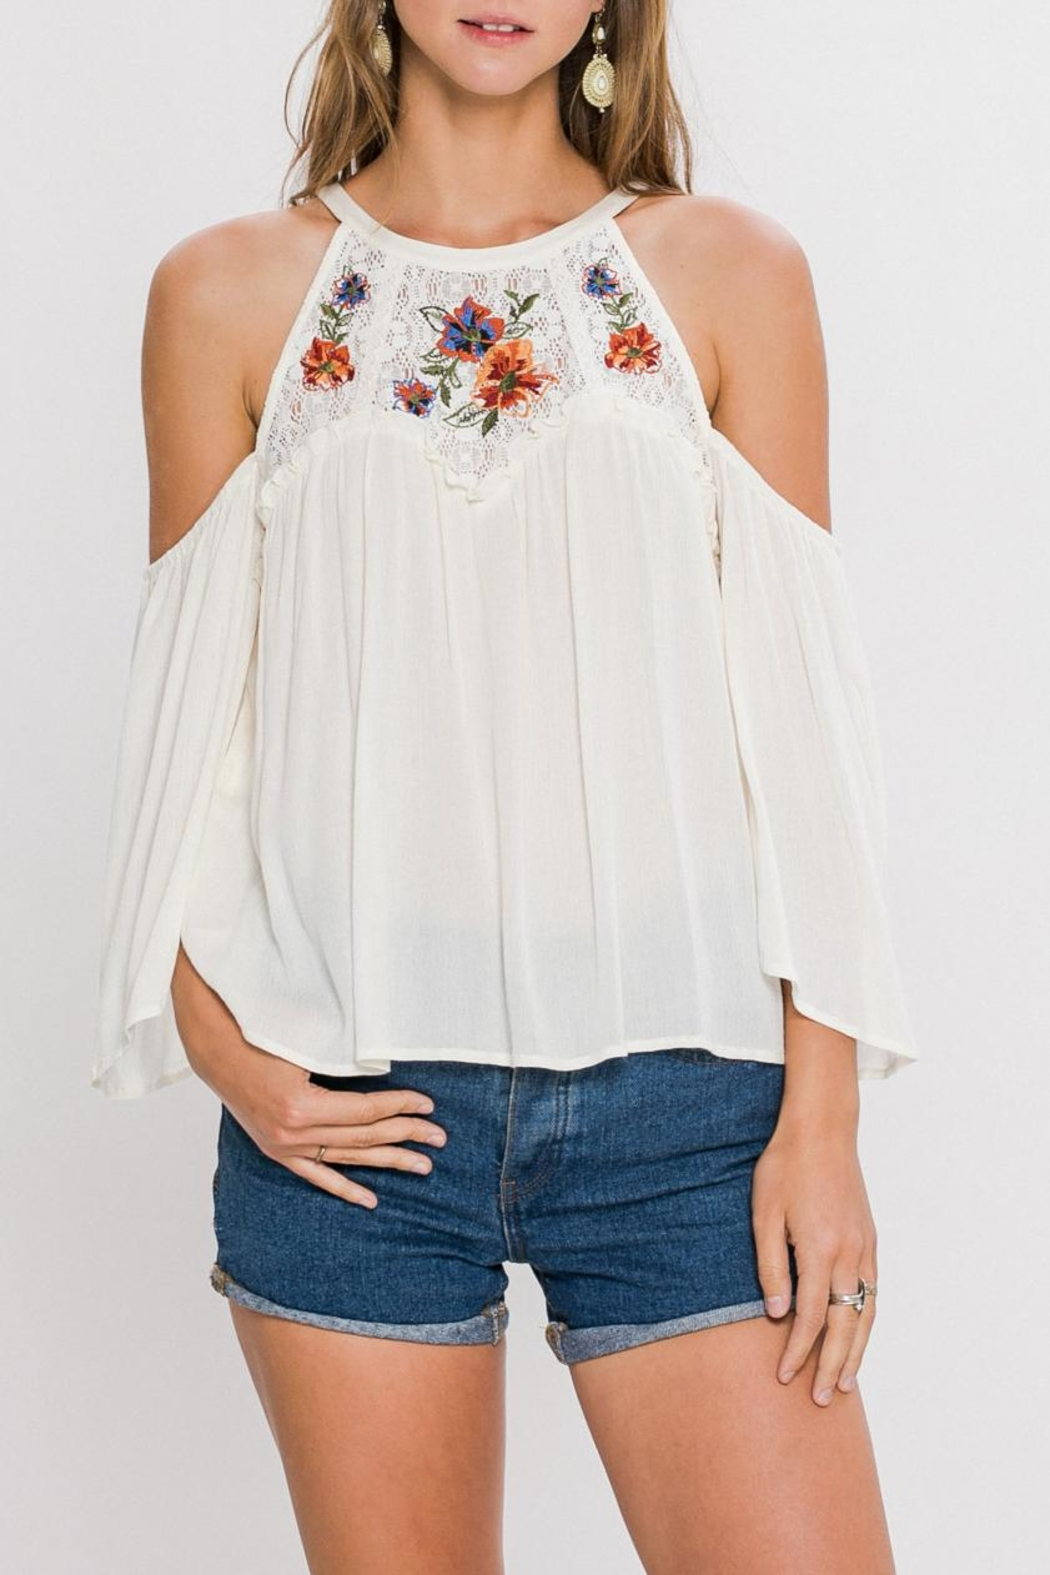 Flying Tomato Floral Embroidery Top - Main Image